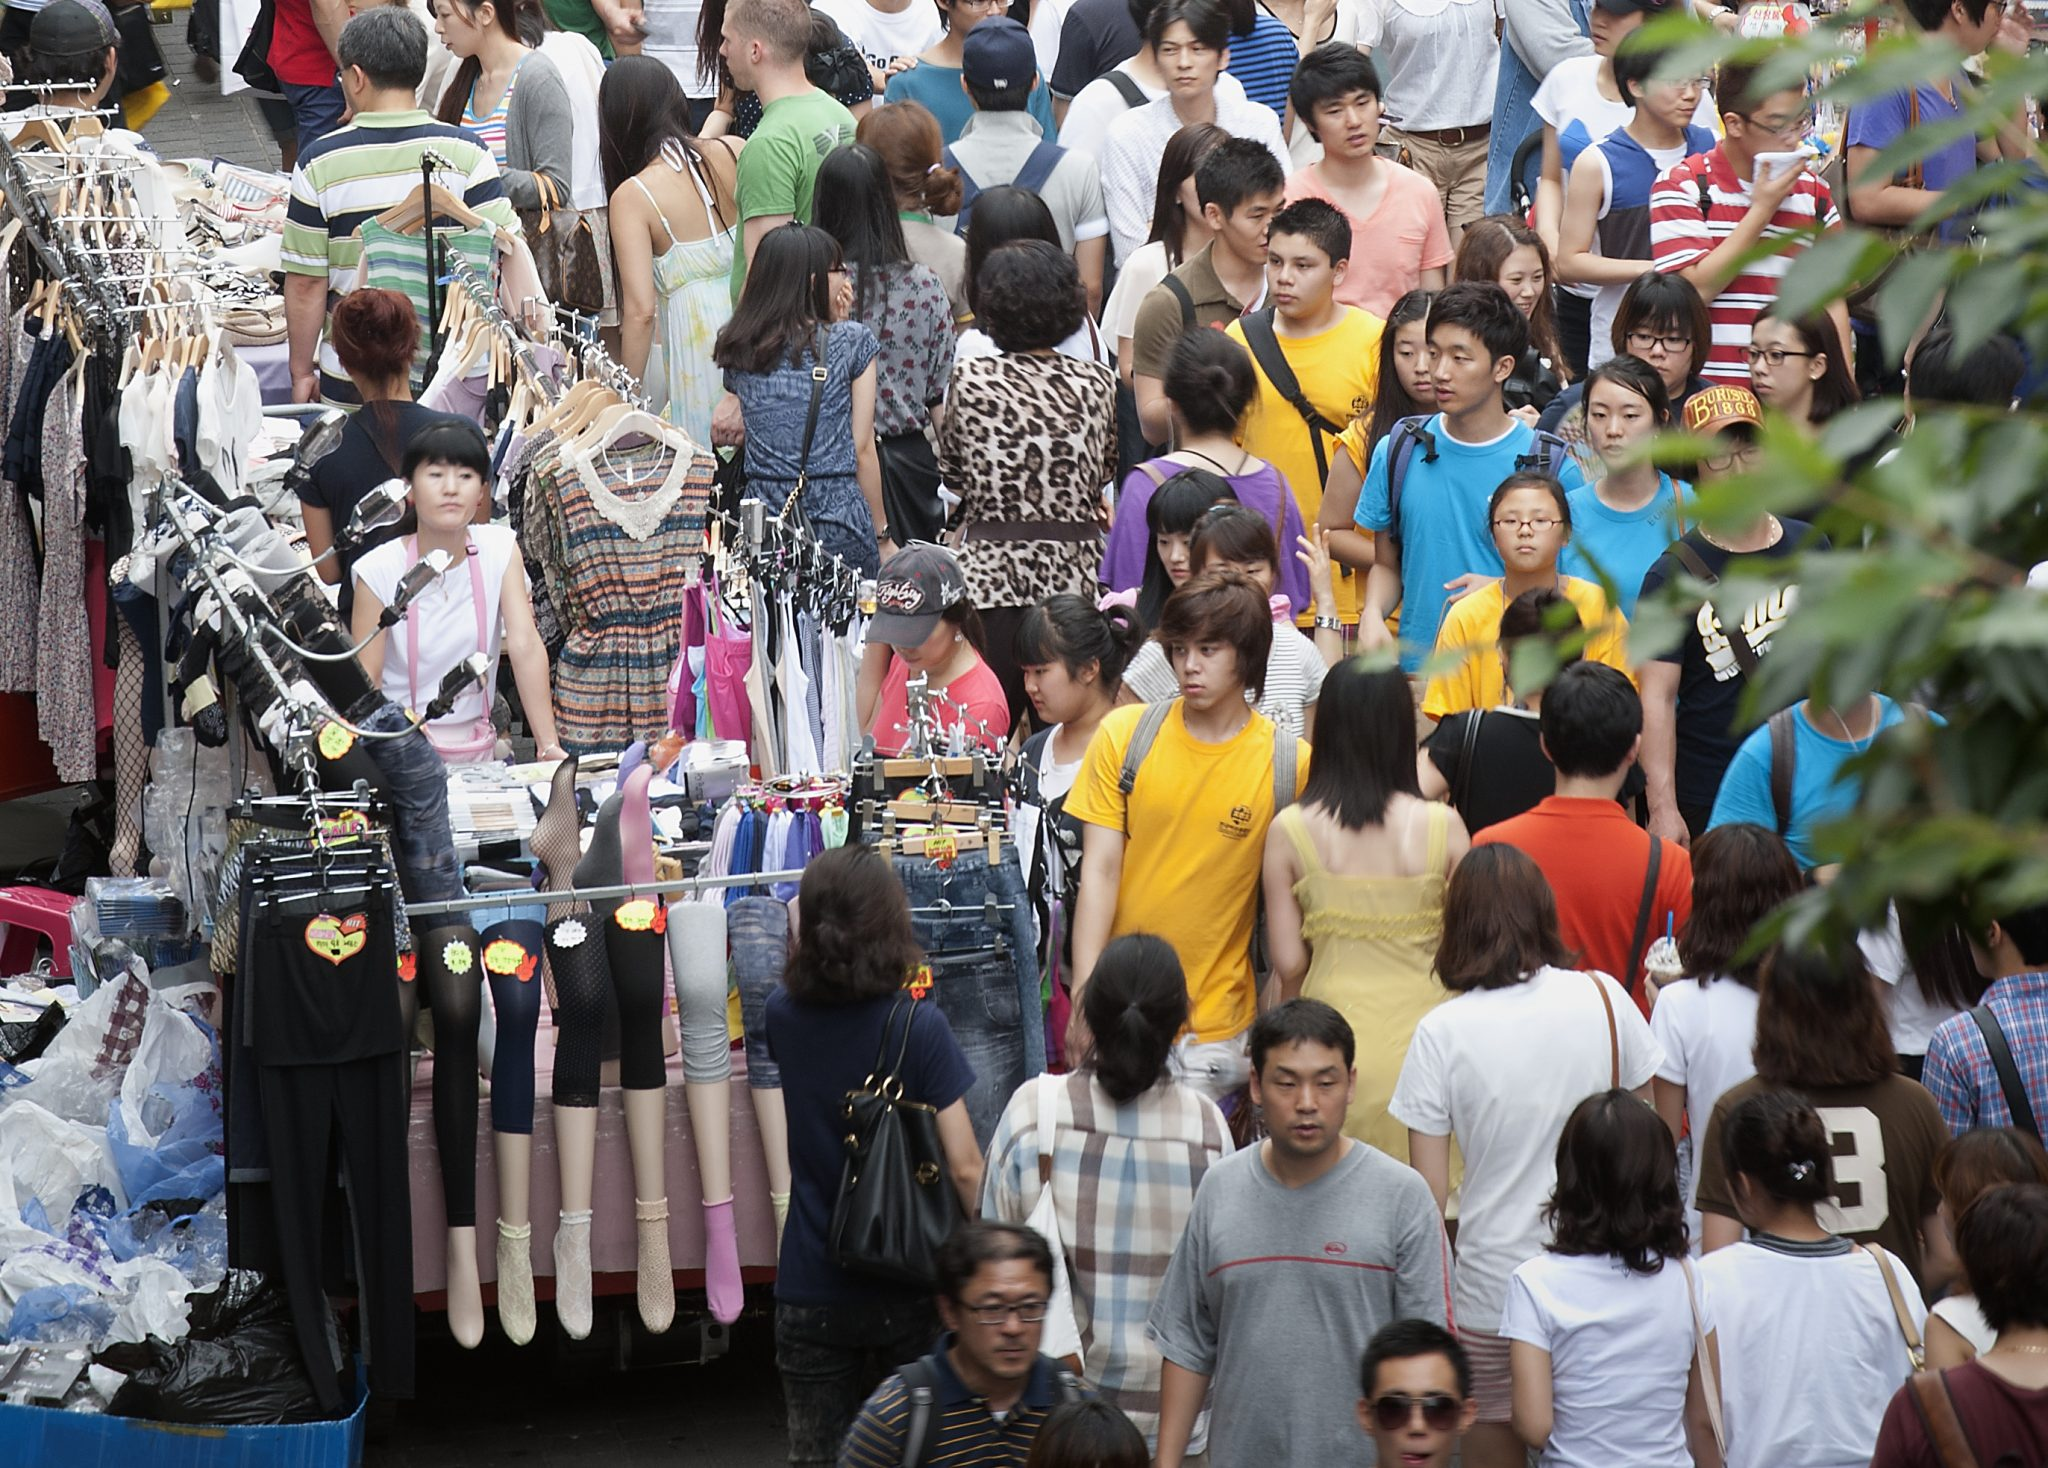 Photo: A throng of shoppers in Myungdong, downtown Seoul.